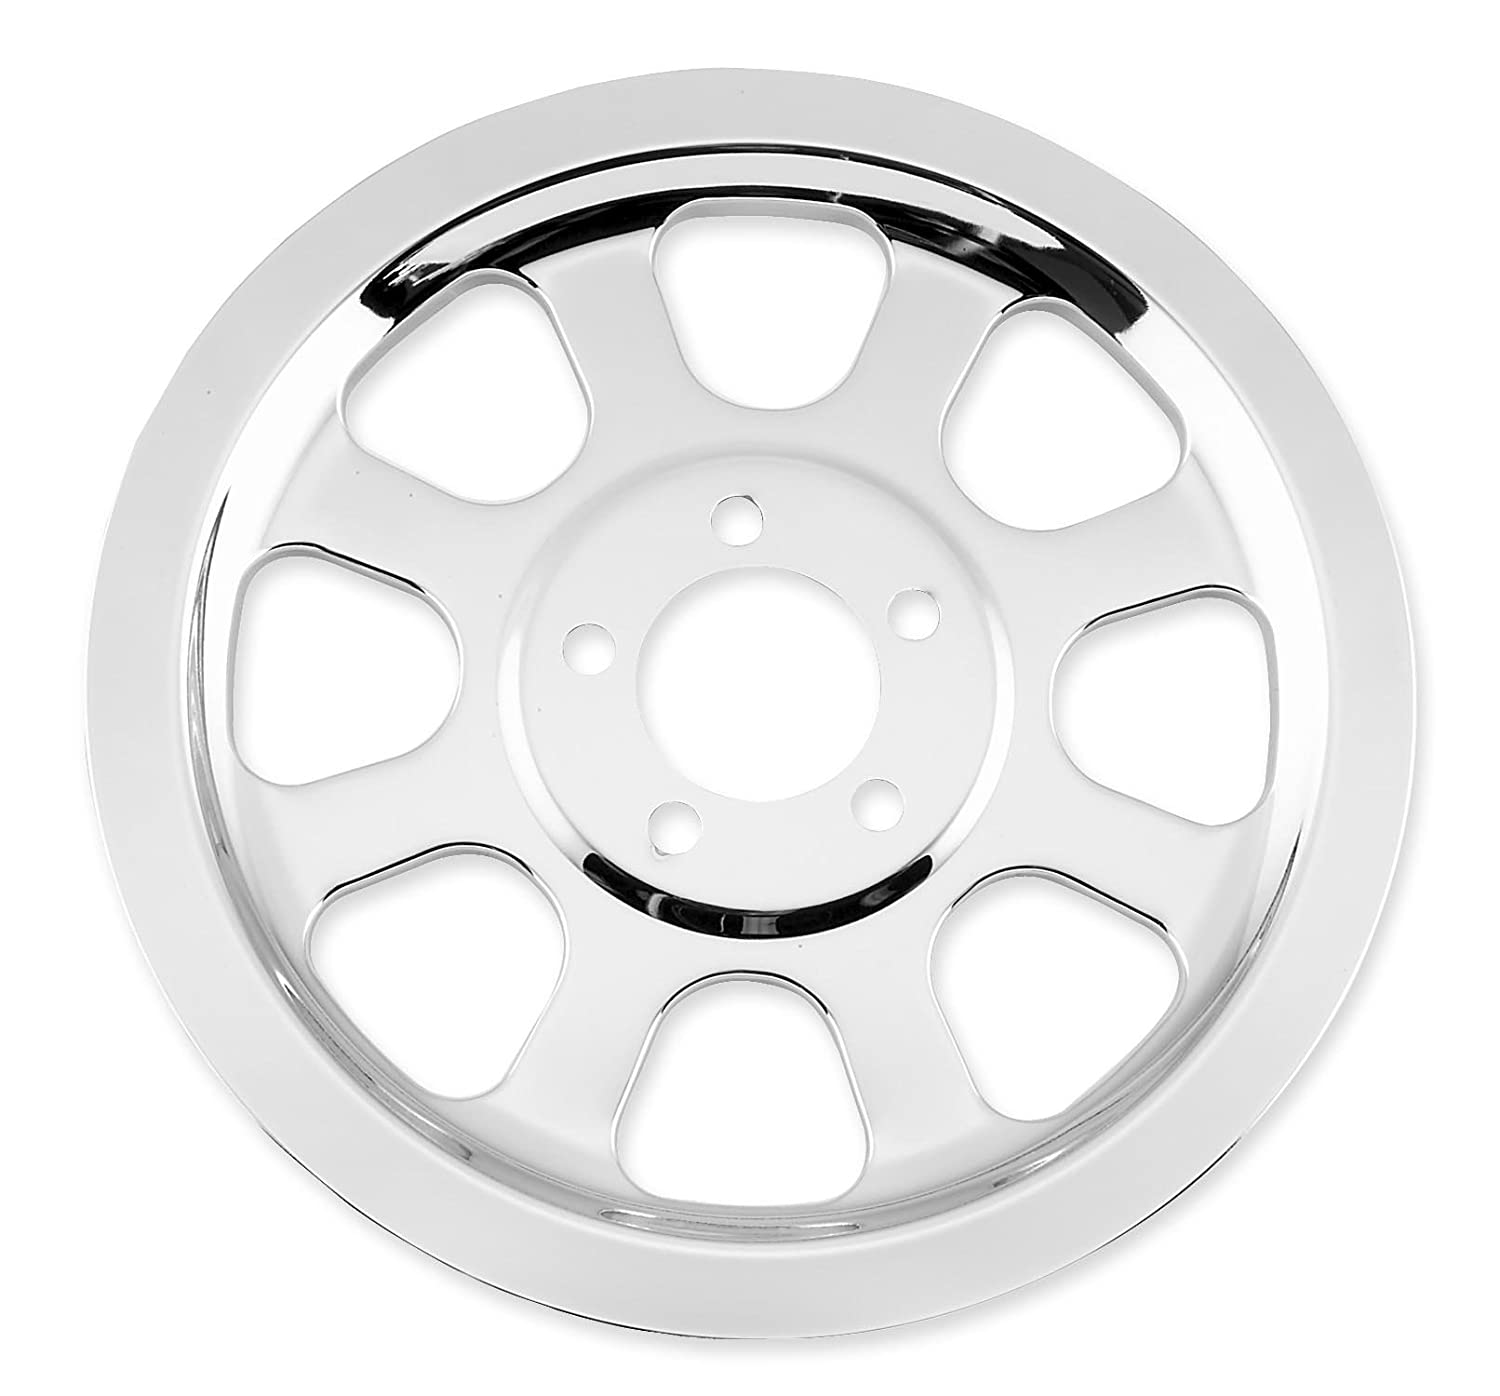 BIKERS CHOICE PULLEY COVER CHROME HARLEY SOFTAIL 00-05 LEPAZA59449